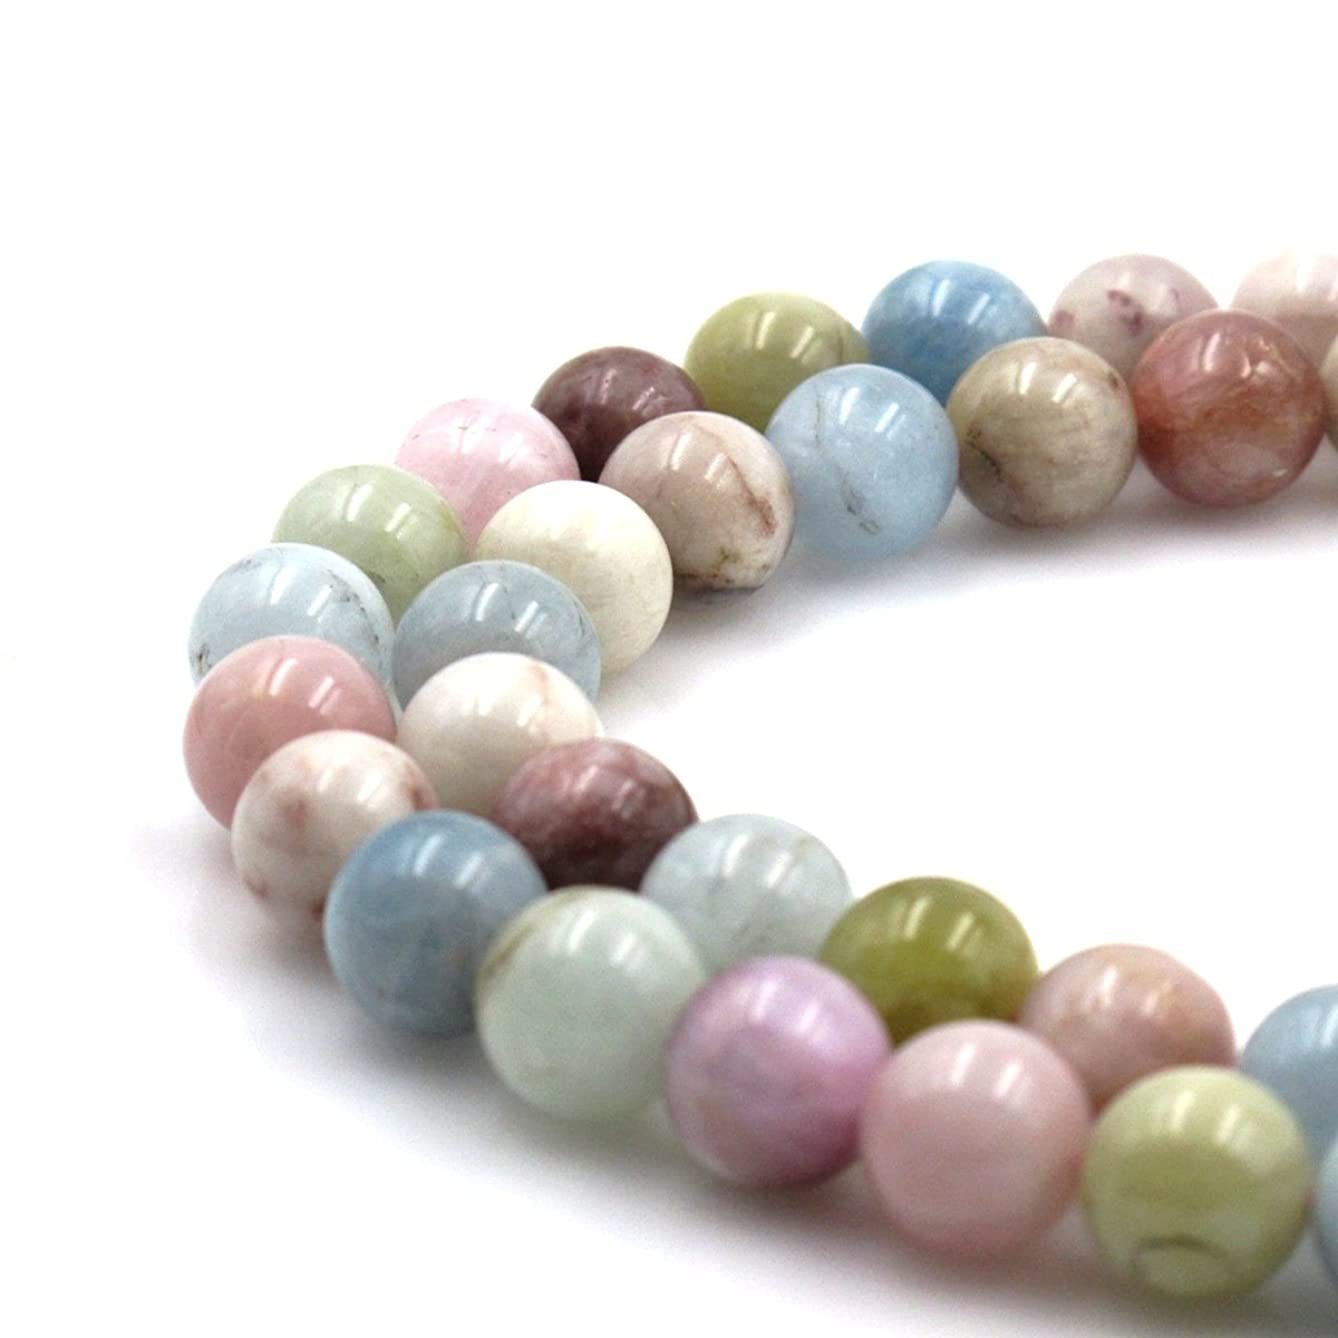 BRCbeads Natural Morganite Gemstone Round Loose Beads 10mm Approxi 15.5 inch 38pcs 1 Strand per Bag for Jewelry Making